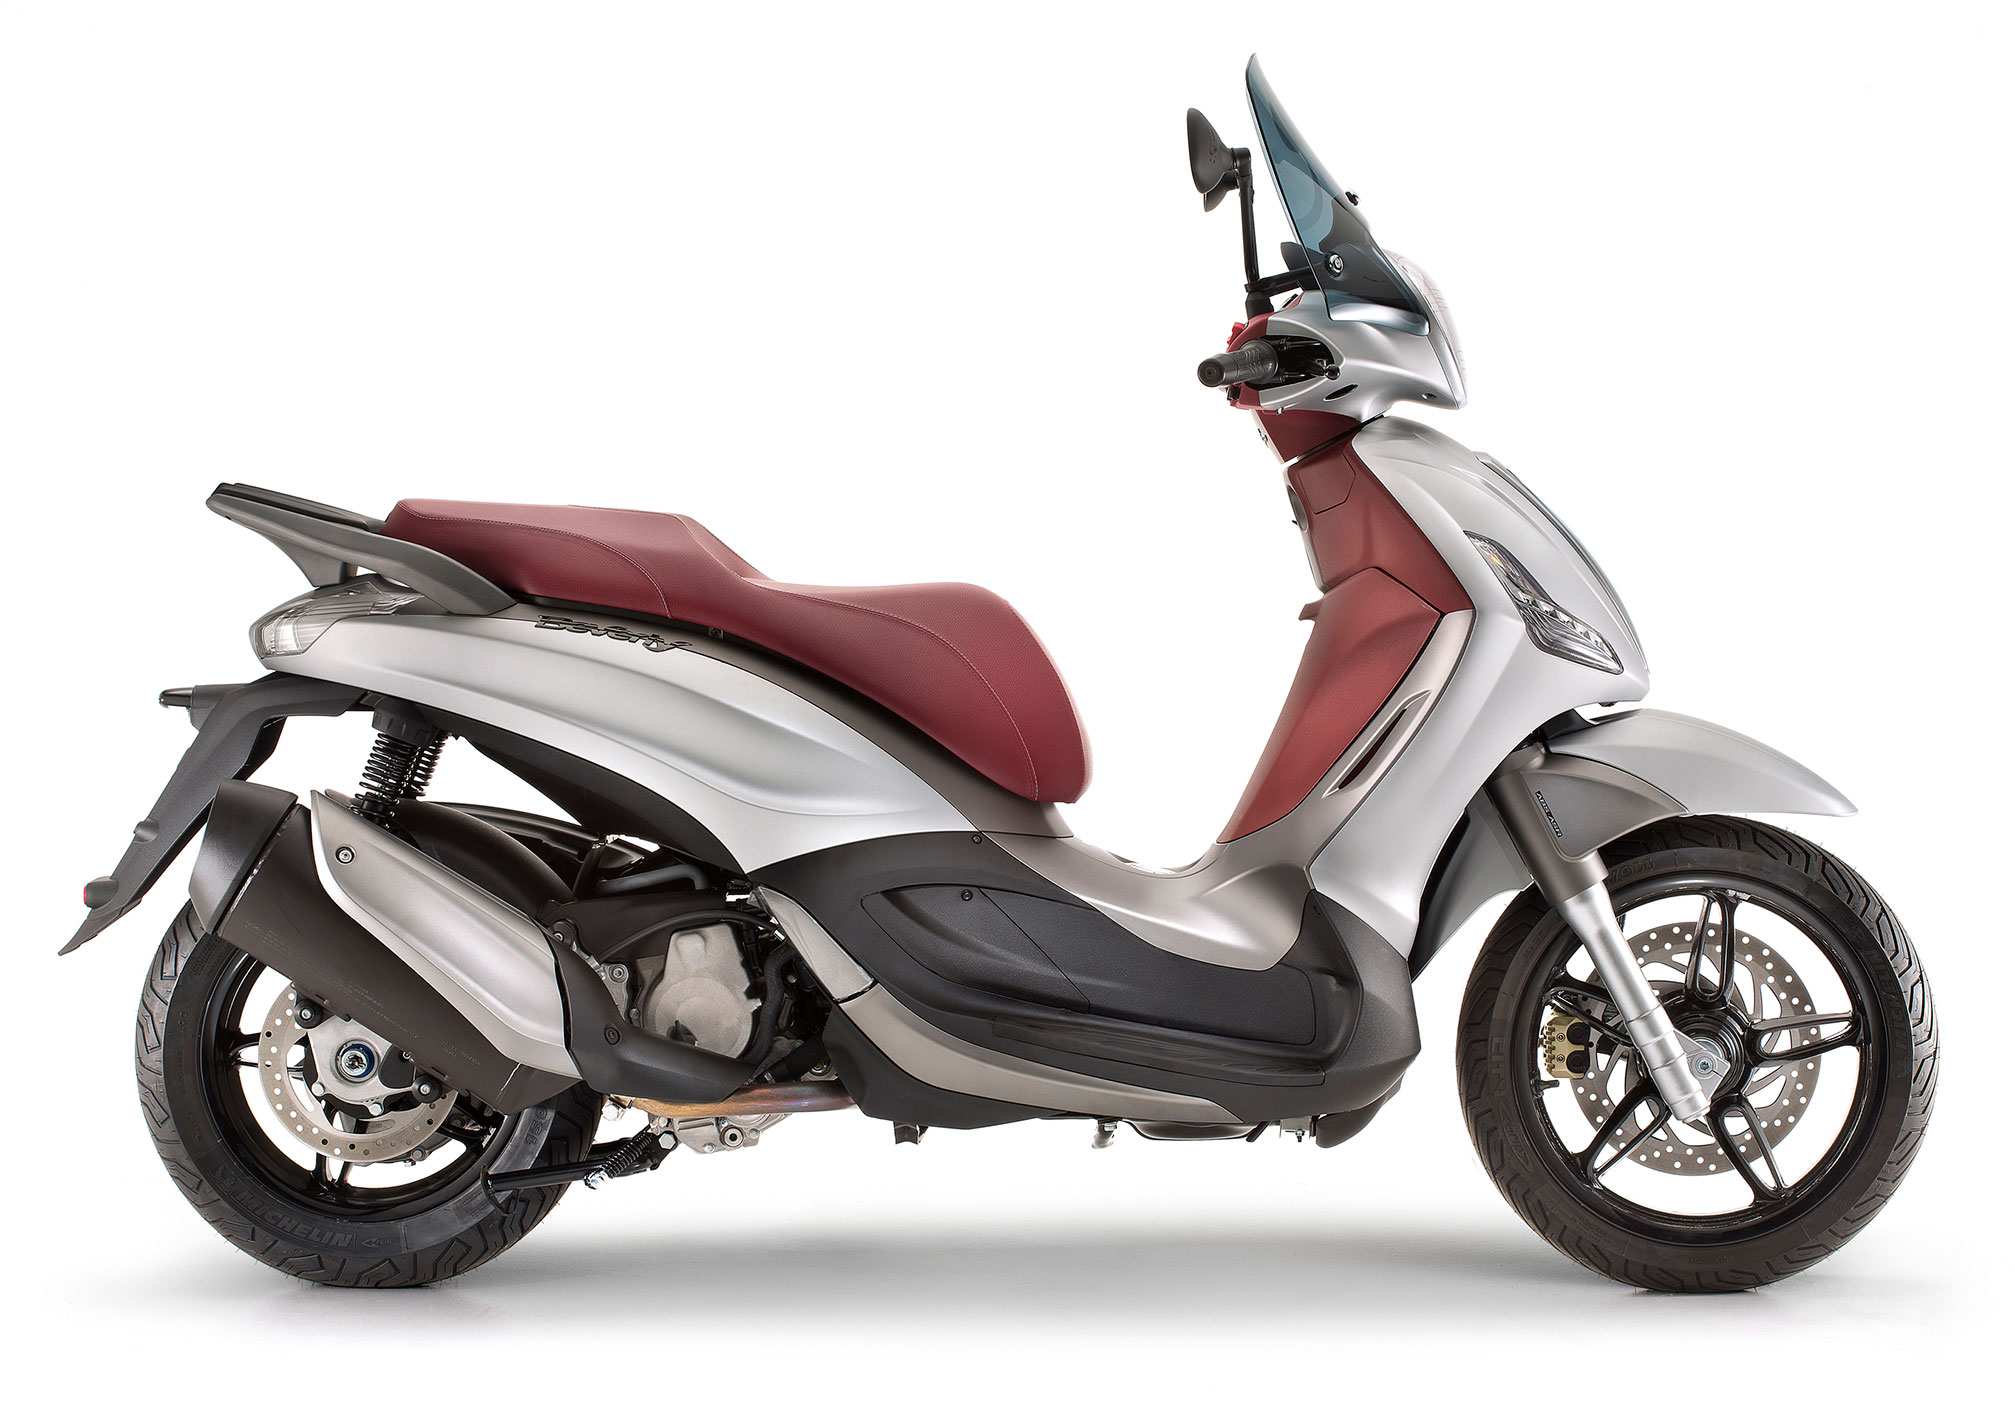 2015 Piaggio Beverly Sport Touring 350ie ABS Review